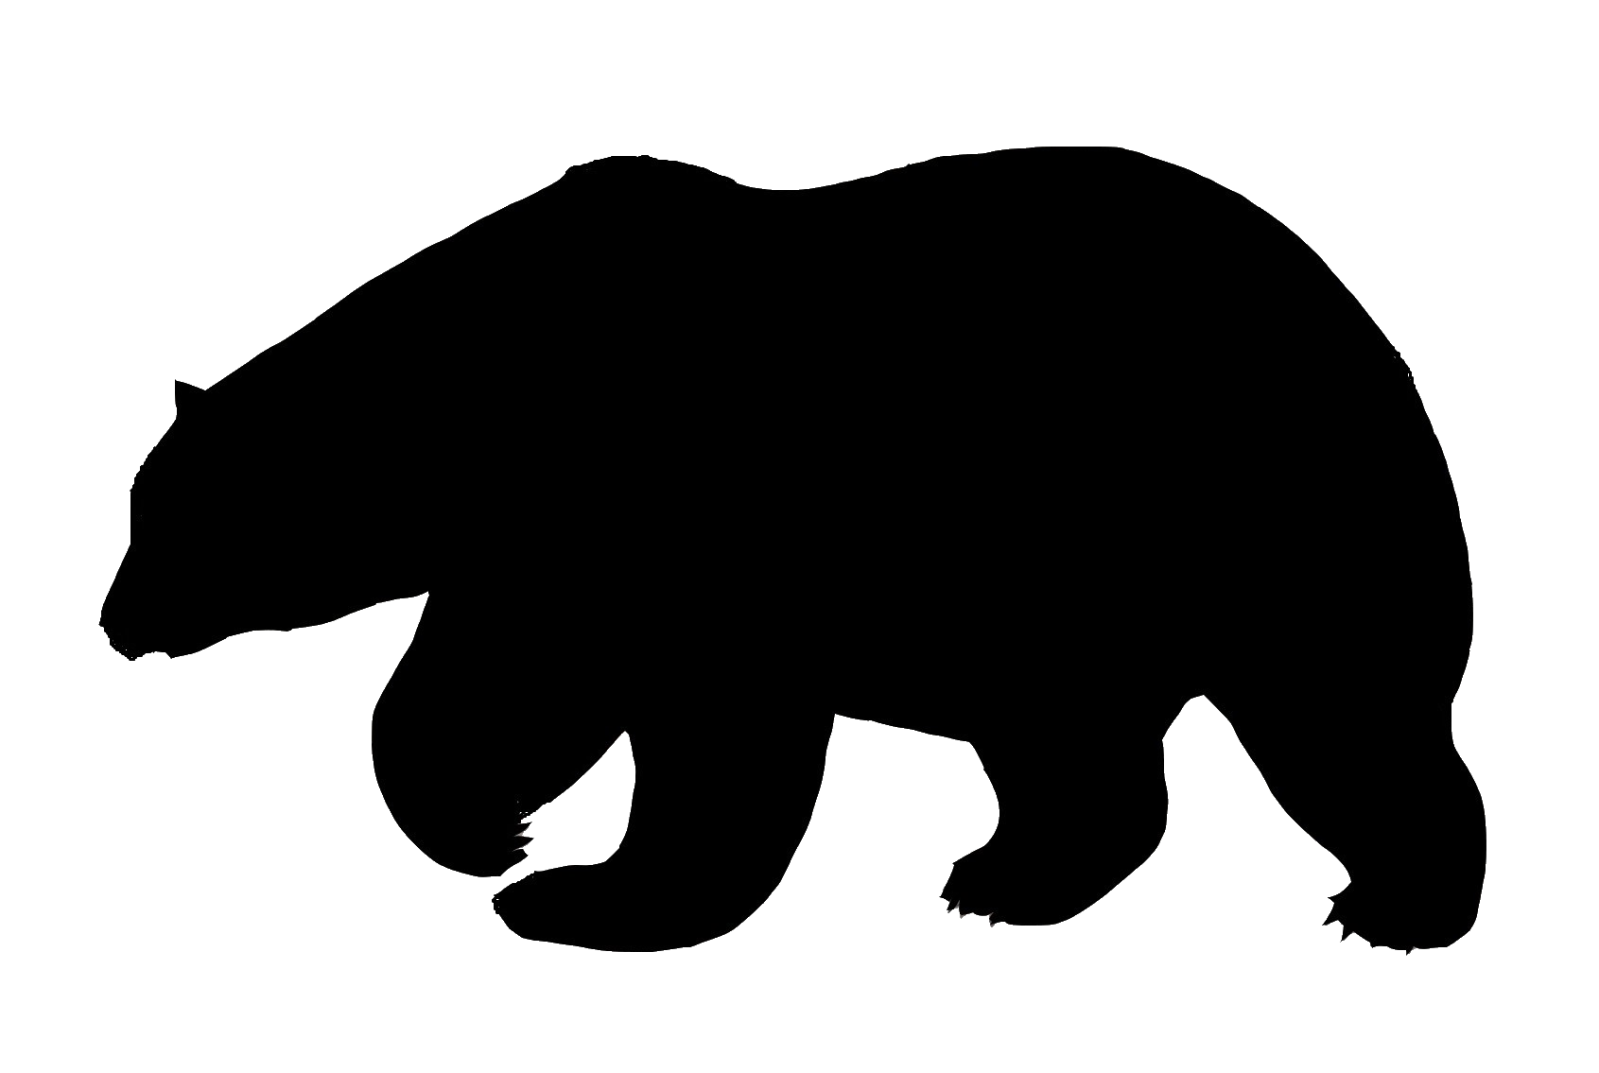 Black silhouette at getdrawings. Foot clipart polar bear